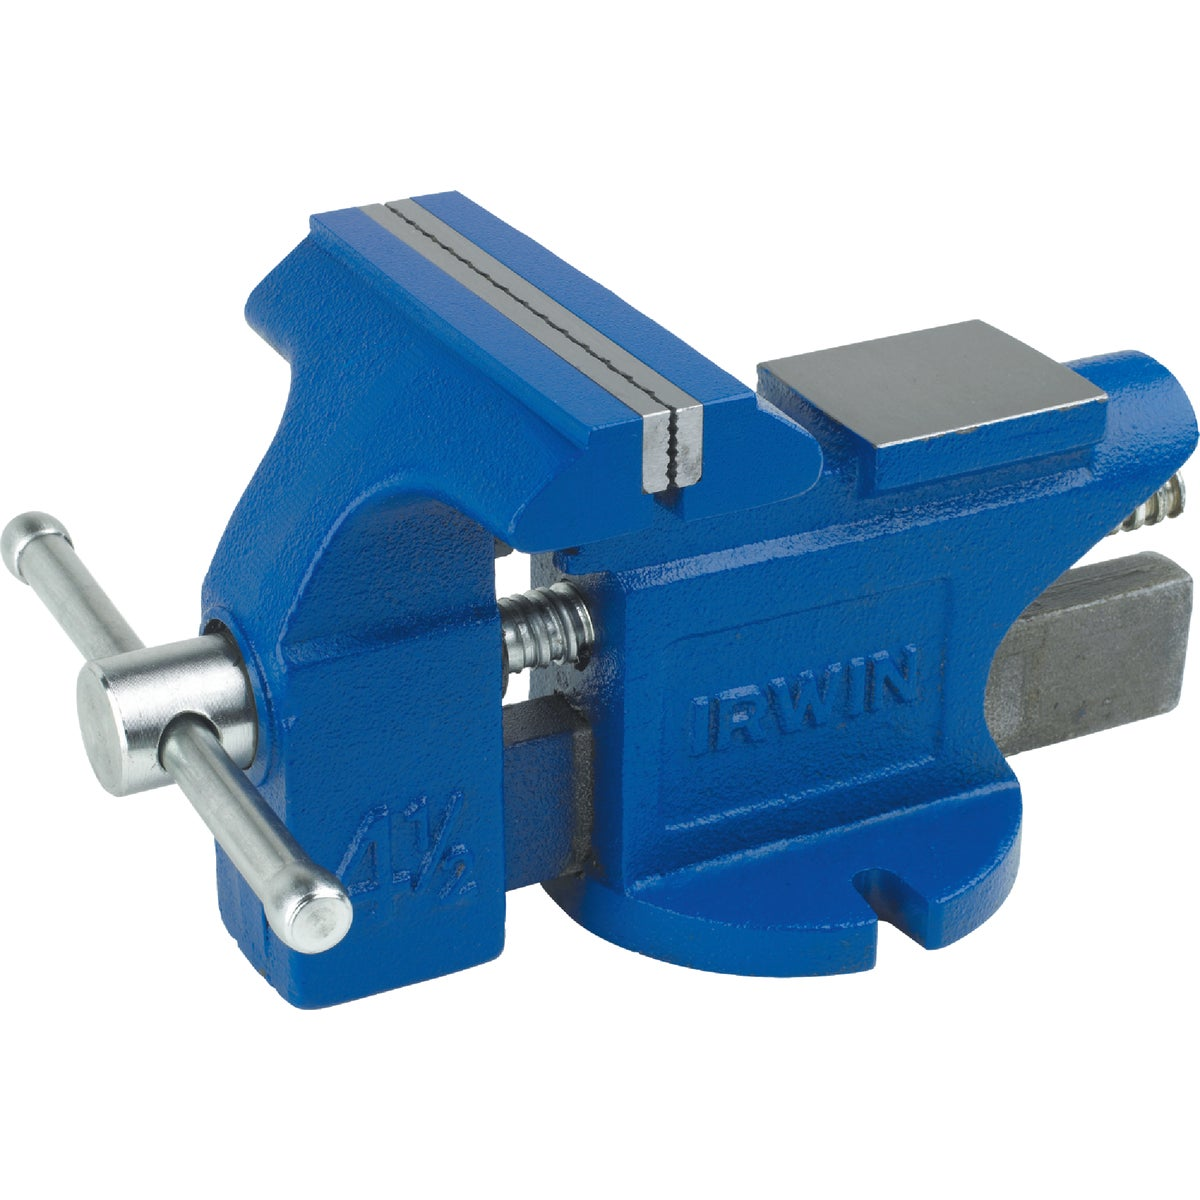 "4-1/2"" BENCH VISE - 2026303 by Irwin Industr Tool"